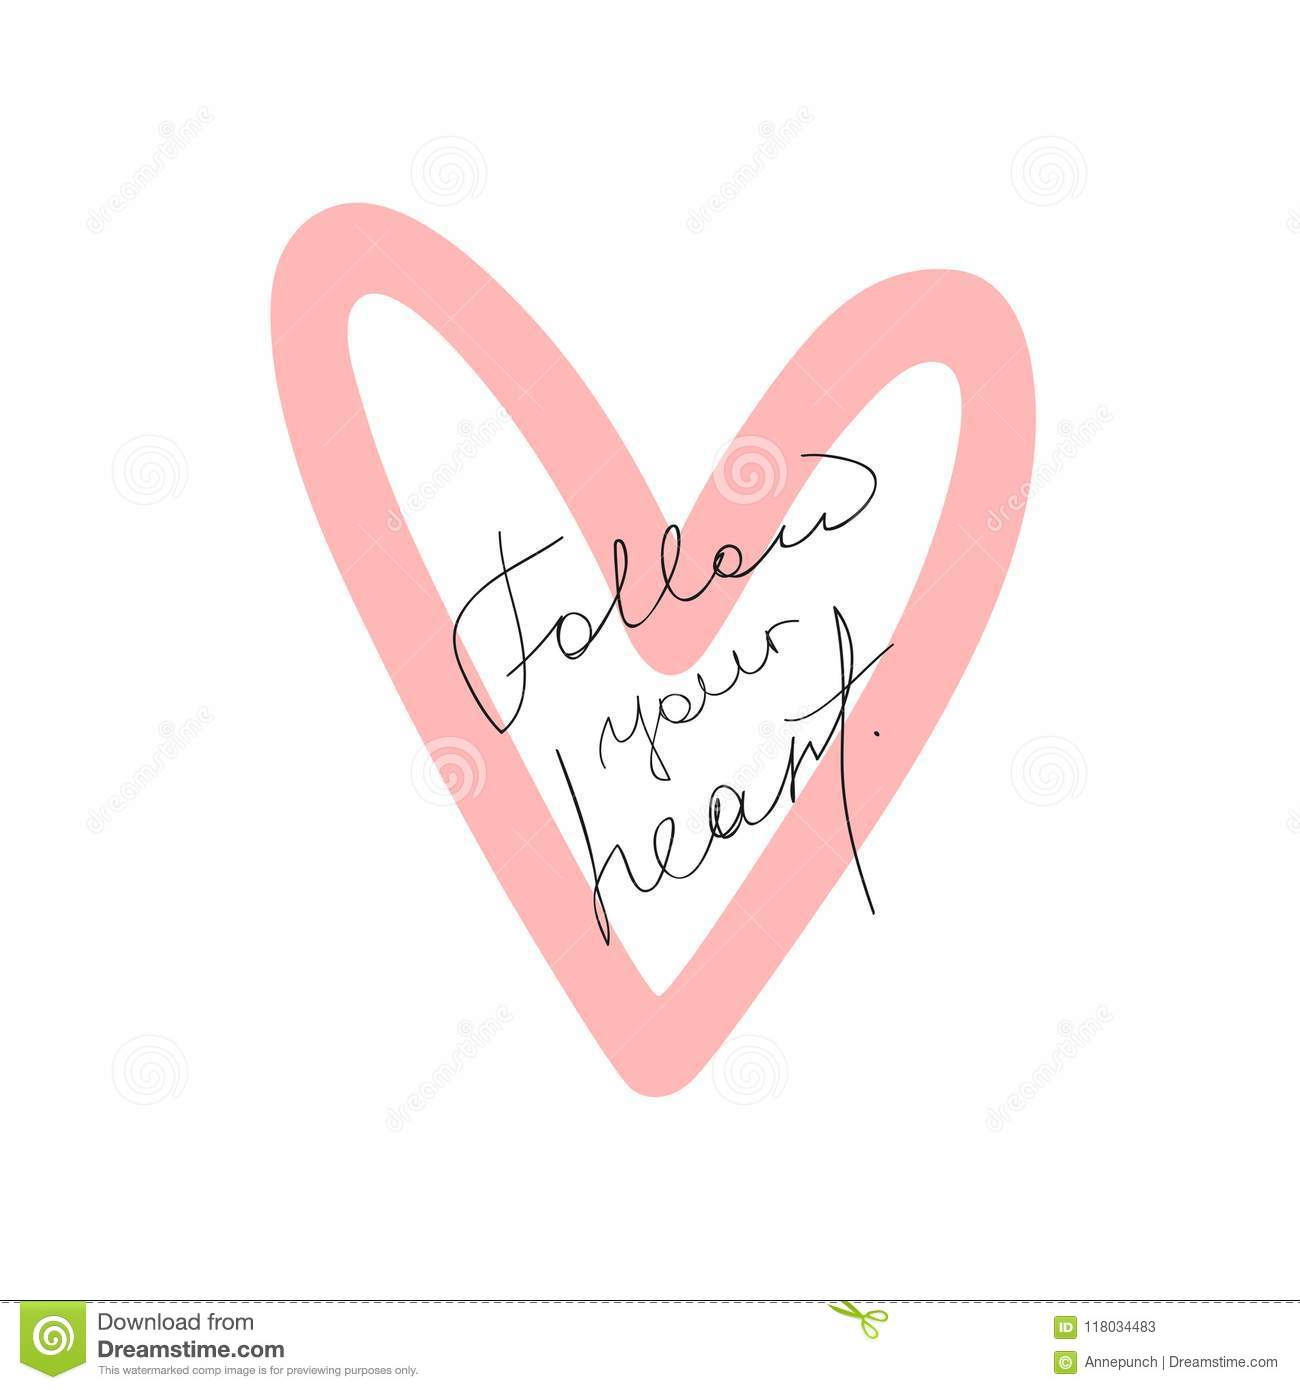 Outline Of Heart And Handwritten Quote Follow Your Heart Cute Print